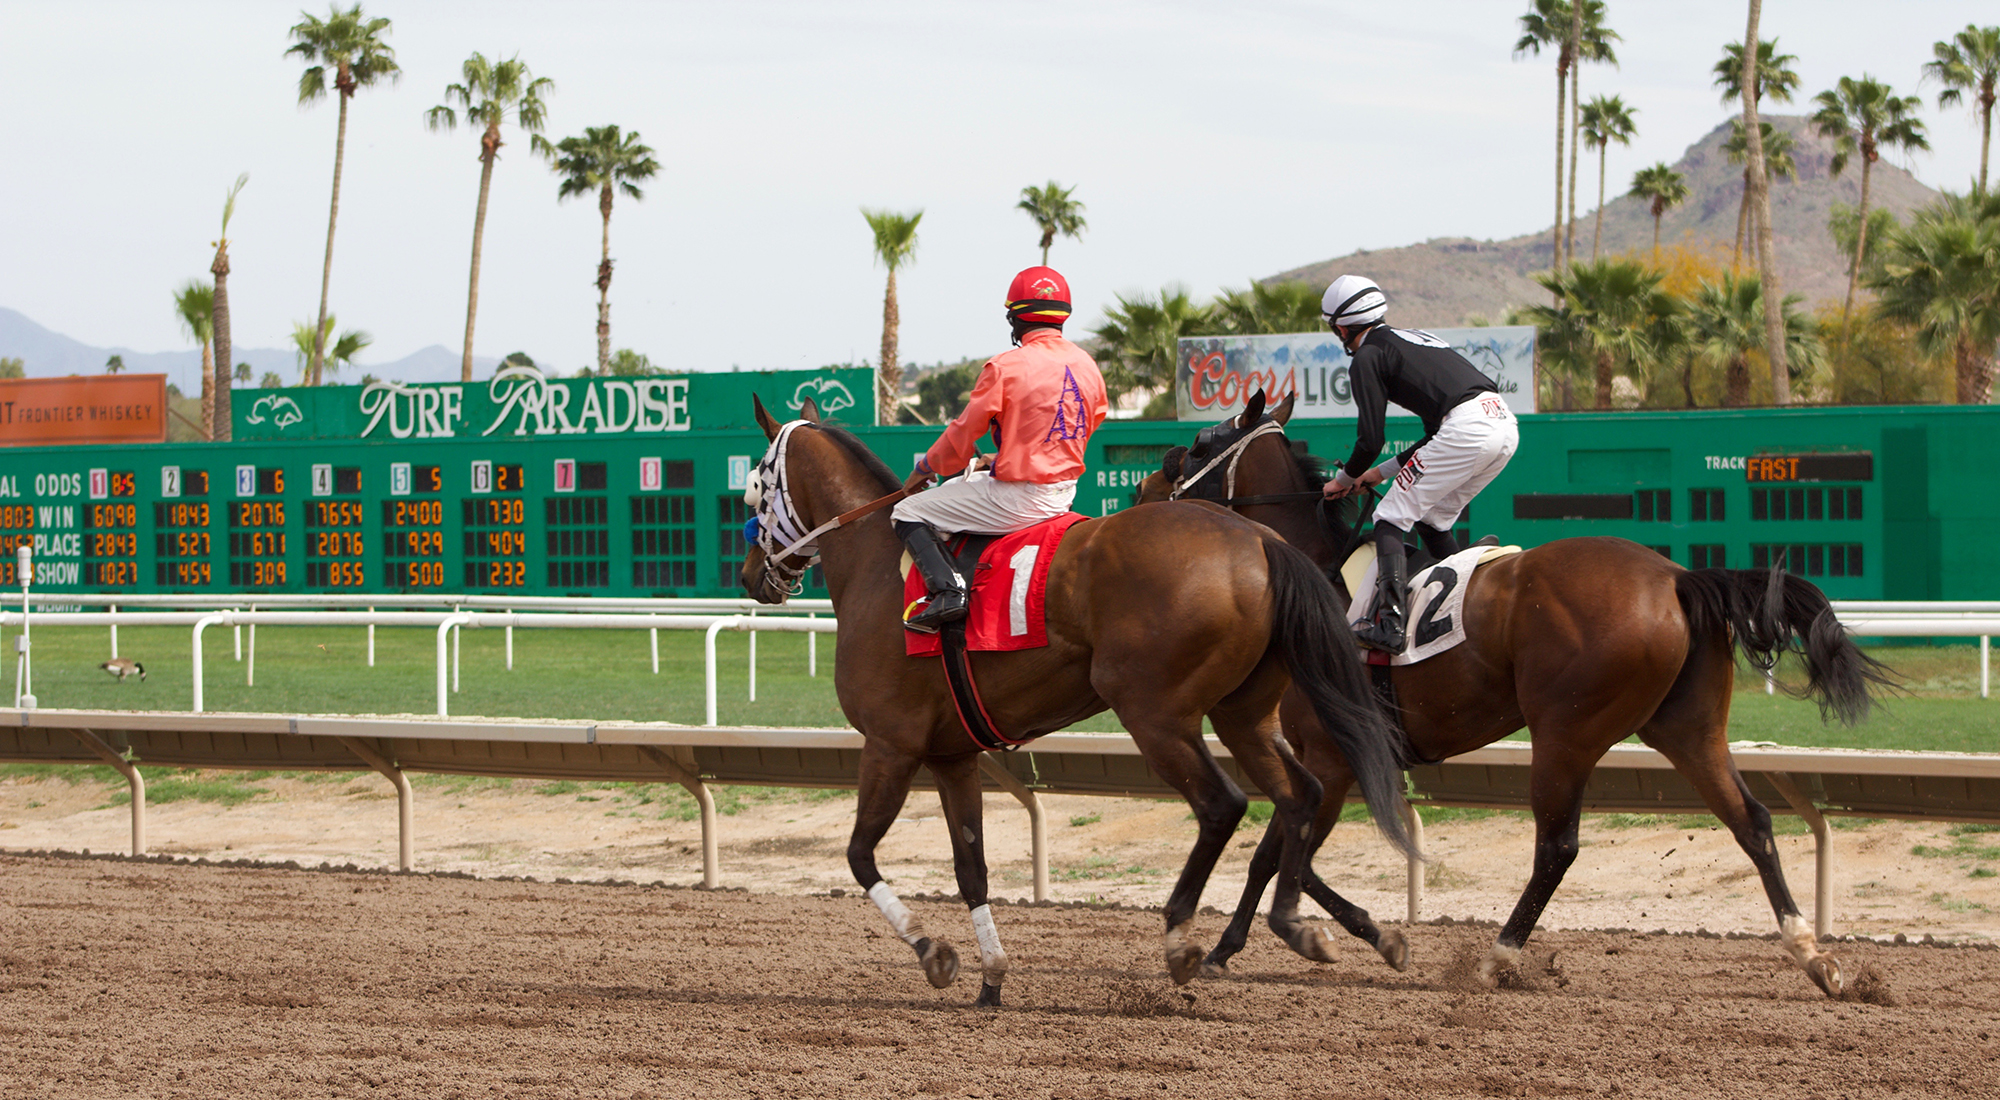 The number of horse deaths at turf paradise and other tracks around the country have alarmed the racing community a leg fracture during a race often means